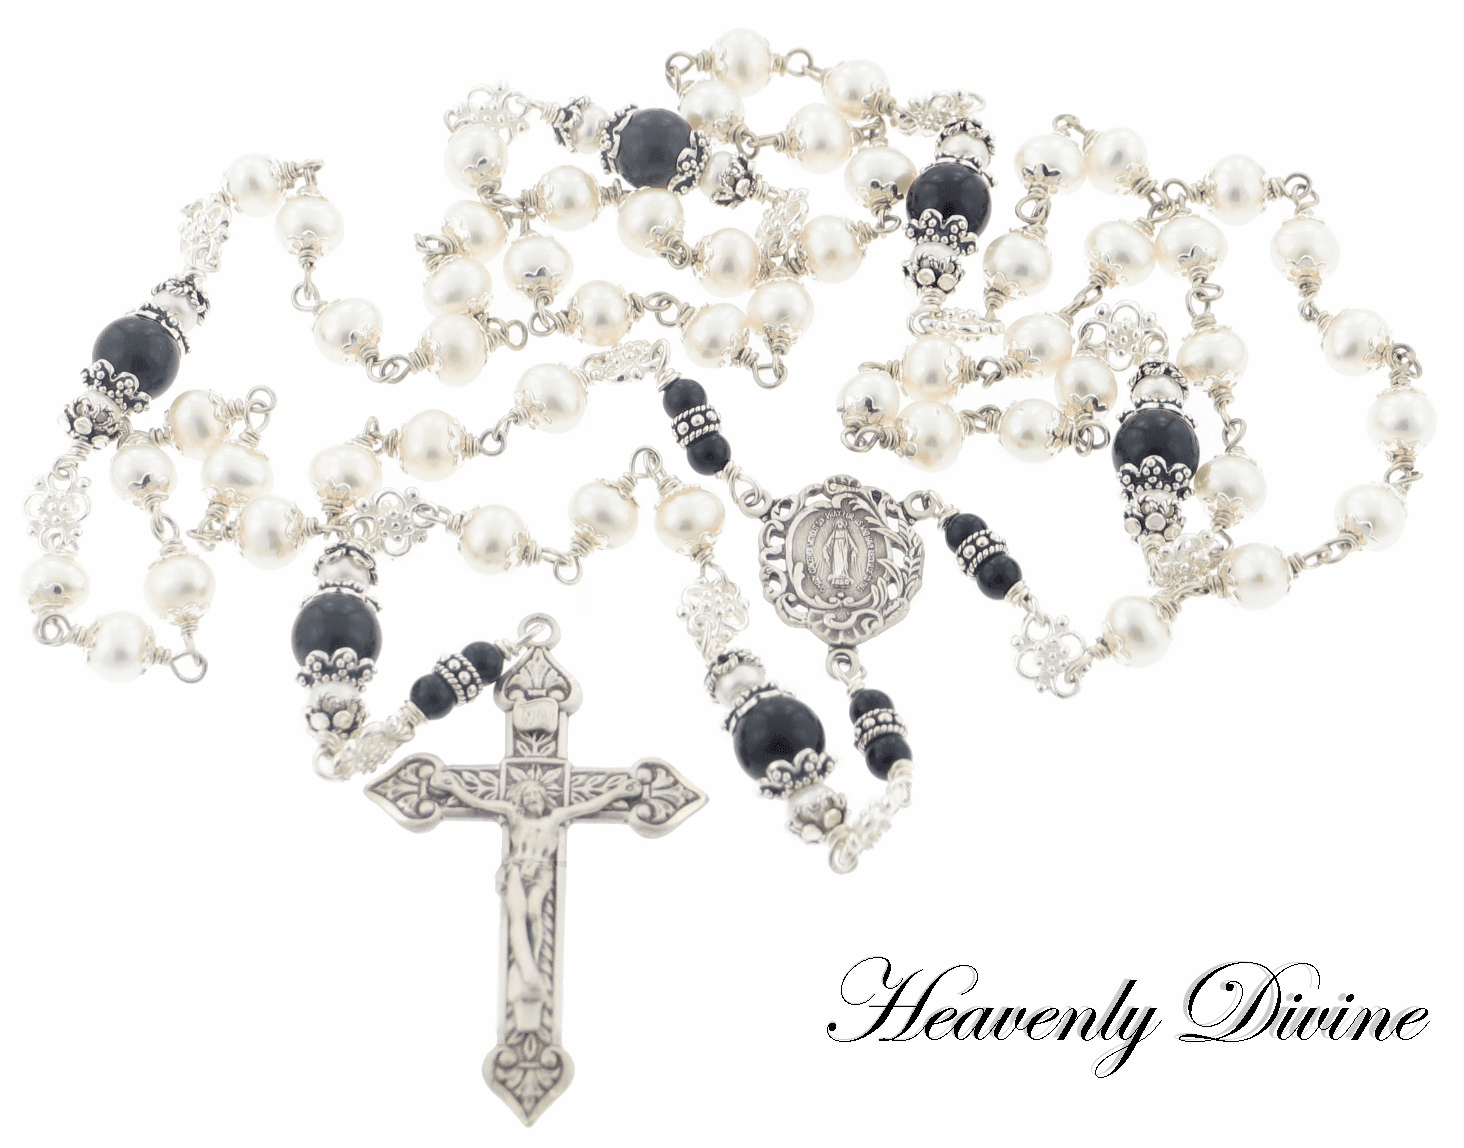 Handmade Pearls & Black Onyx Wire Wrapped Rosary by Heavenly Divine